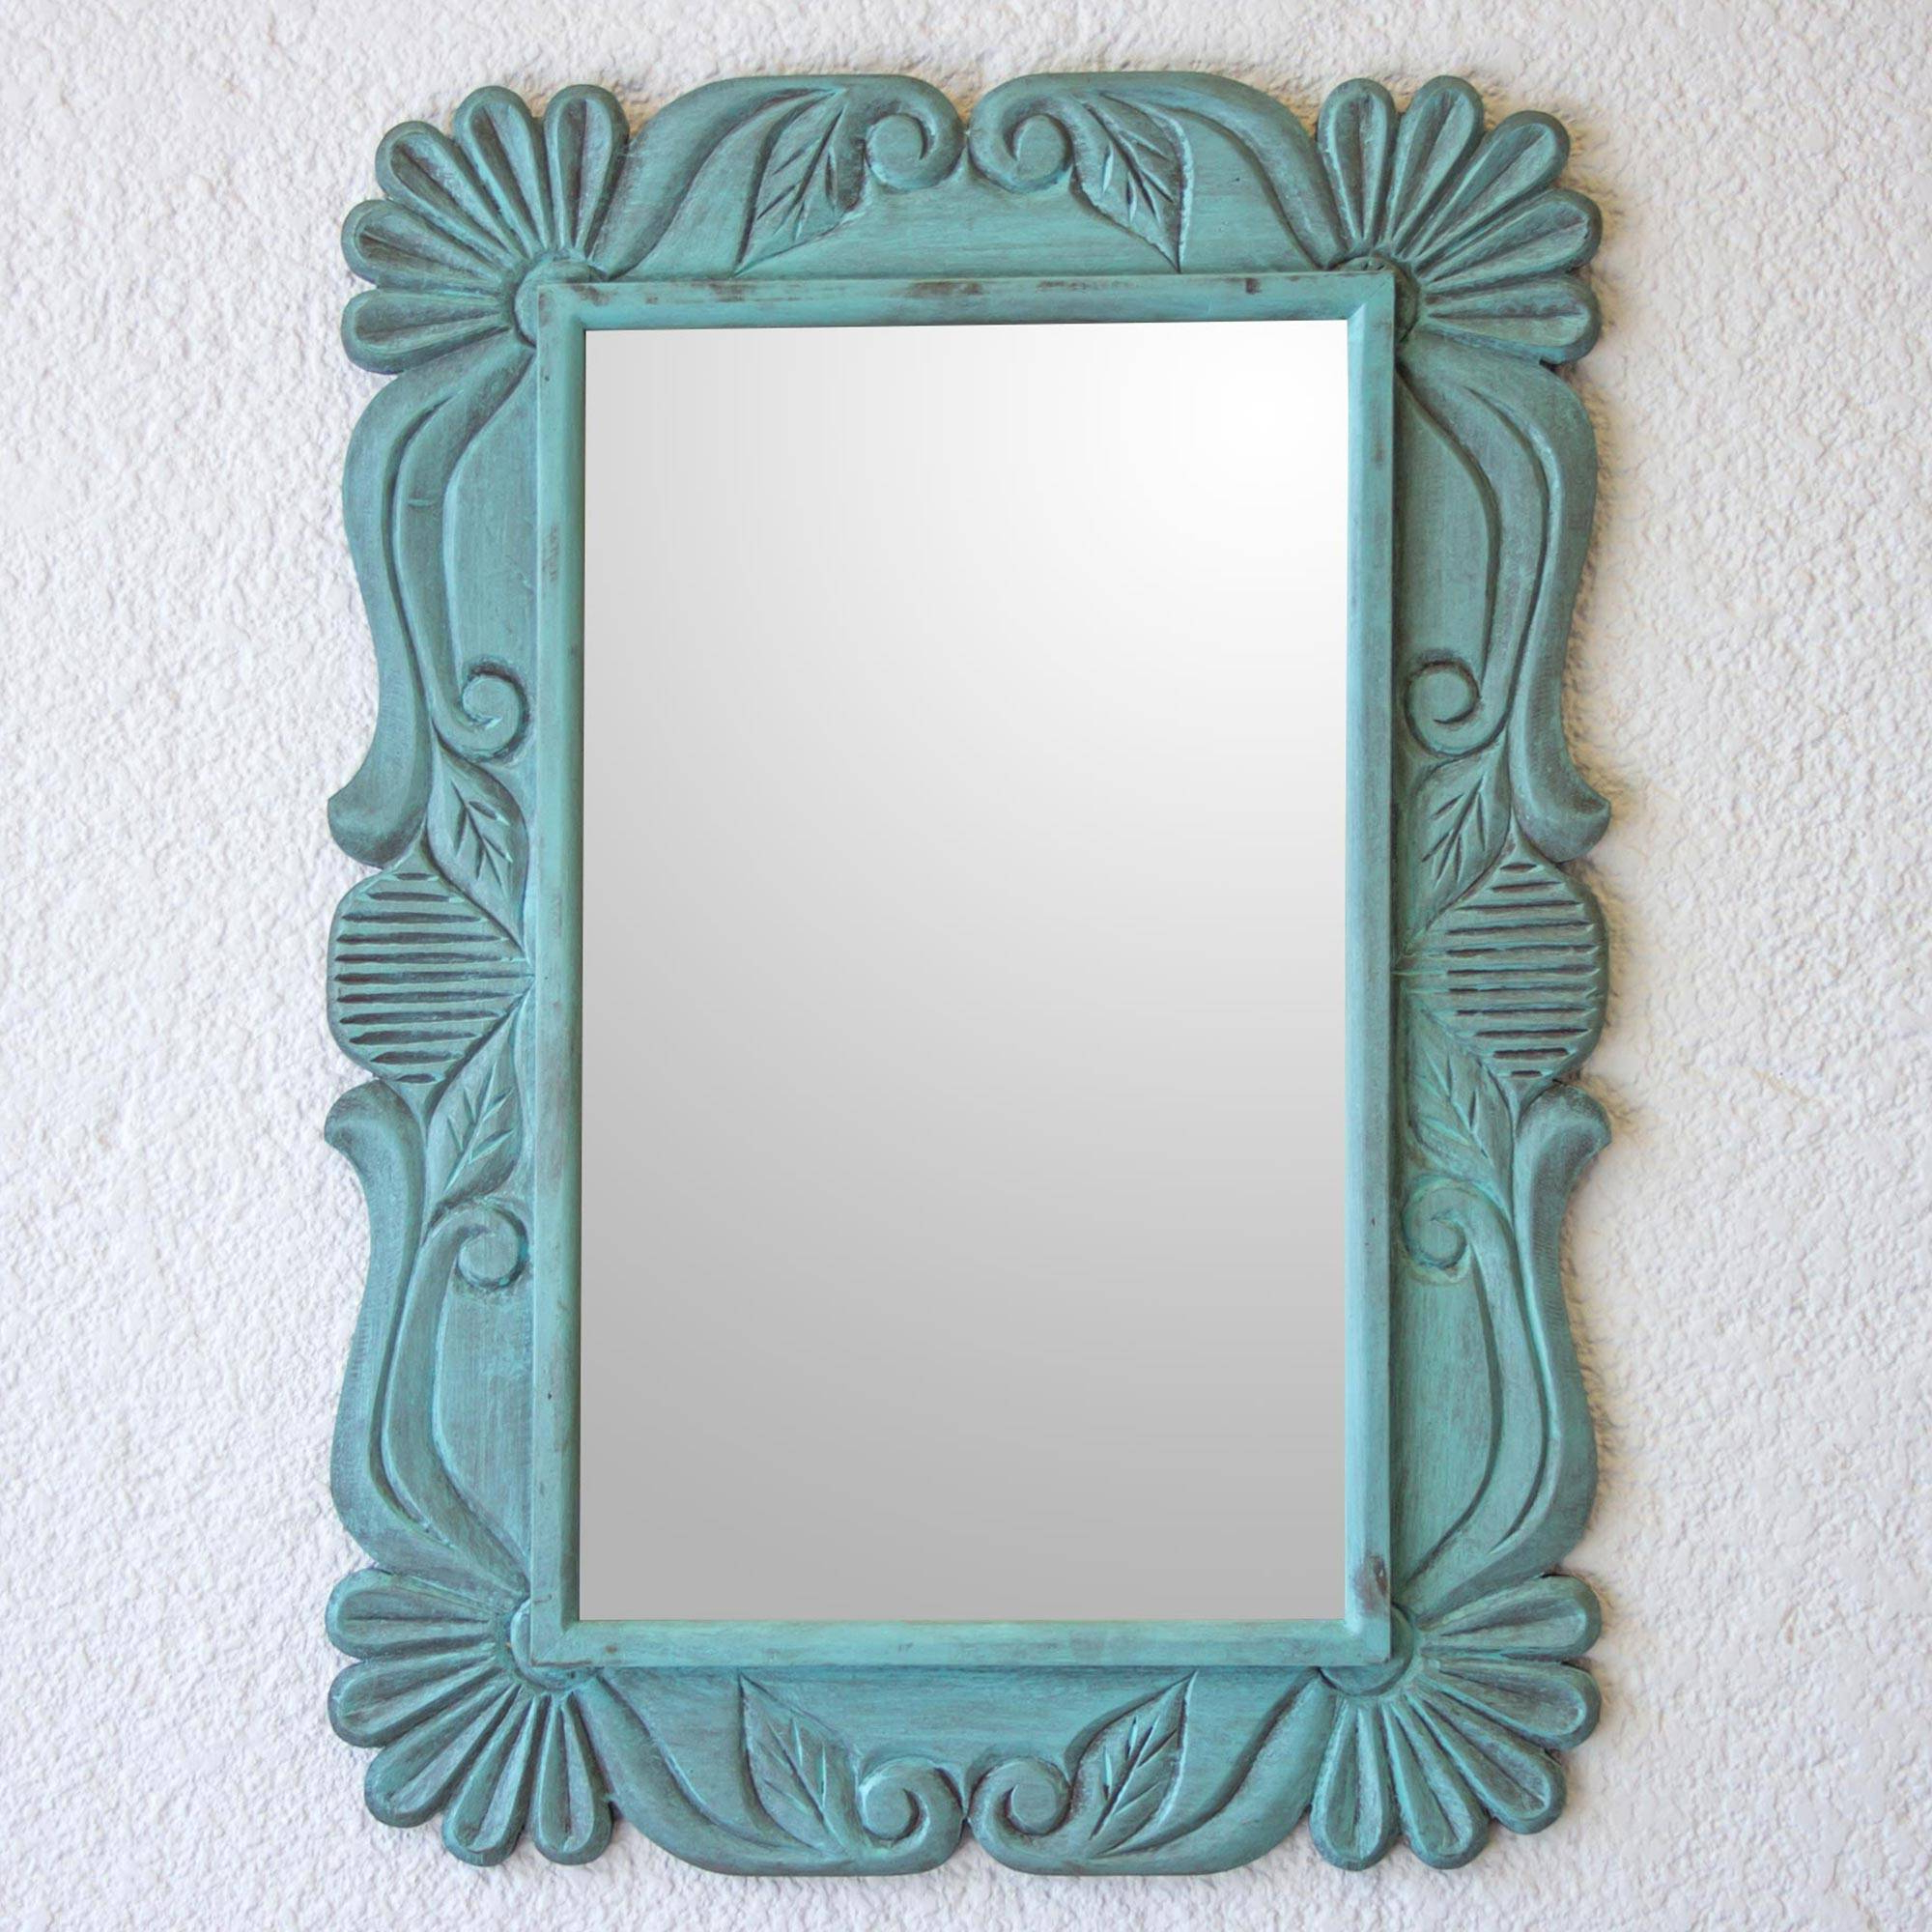 Aqua Wall Mirrors In Preferred Handcrafted Pinewood Floral Mirror In Aqua From Guatemala, 'sunflower Elegance In Aqua' (View 15 of 20)